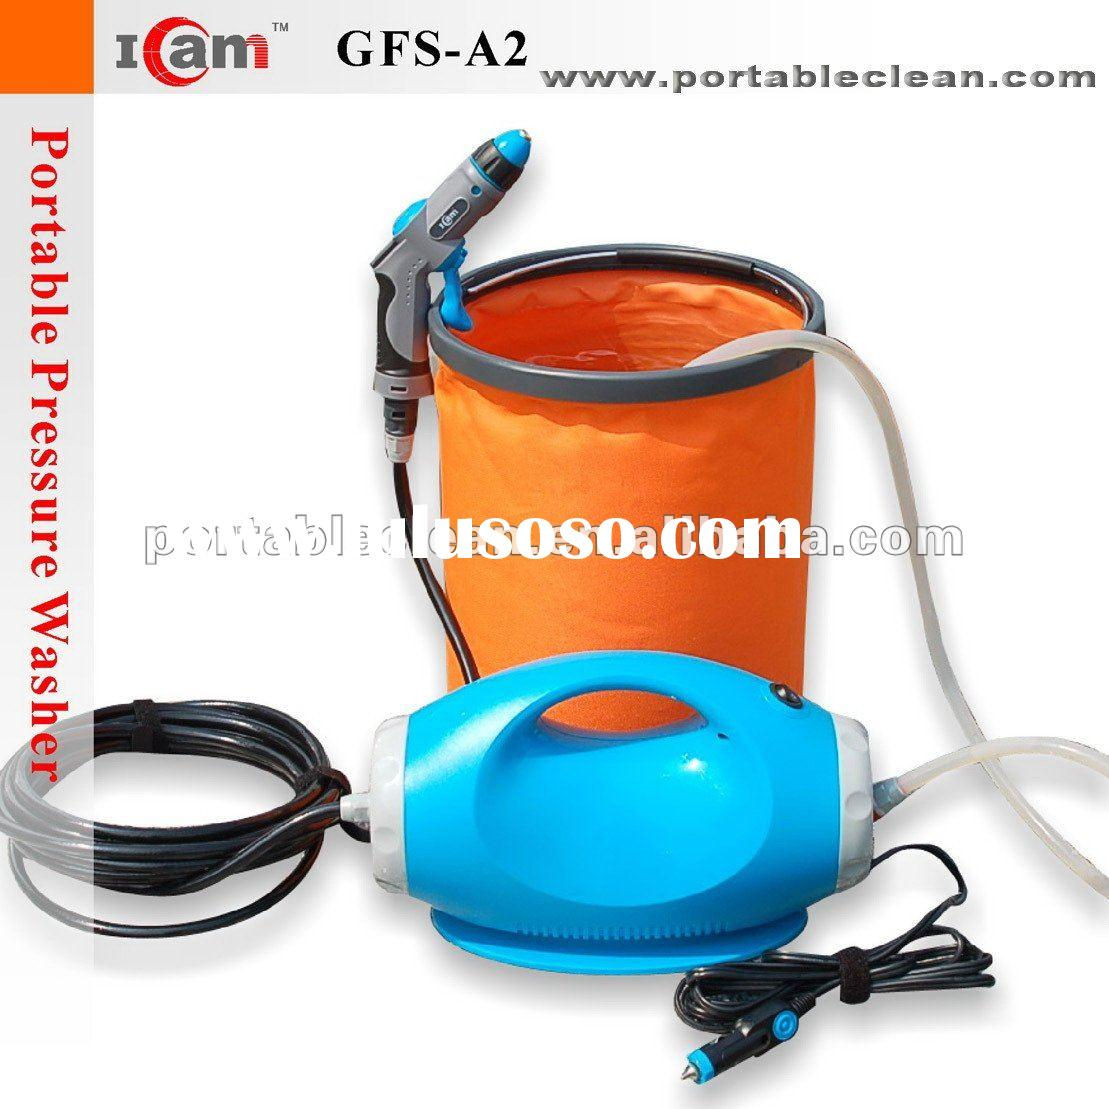 GFS-A2-high pressure portable car wash